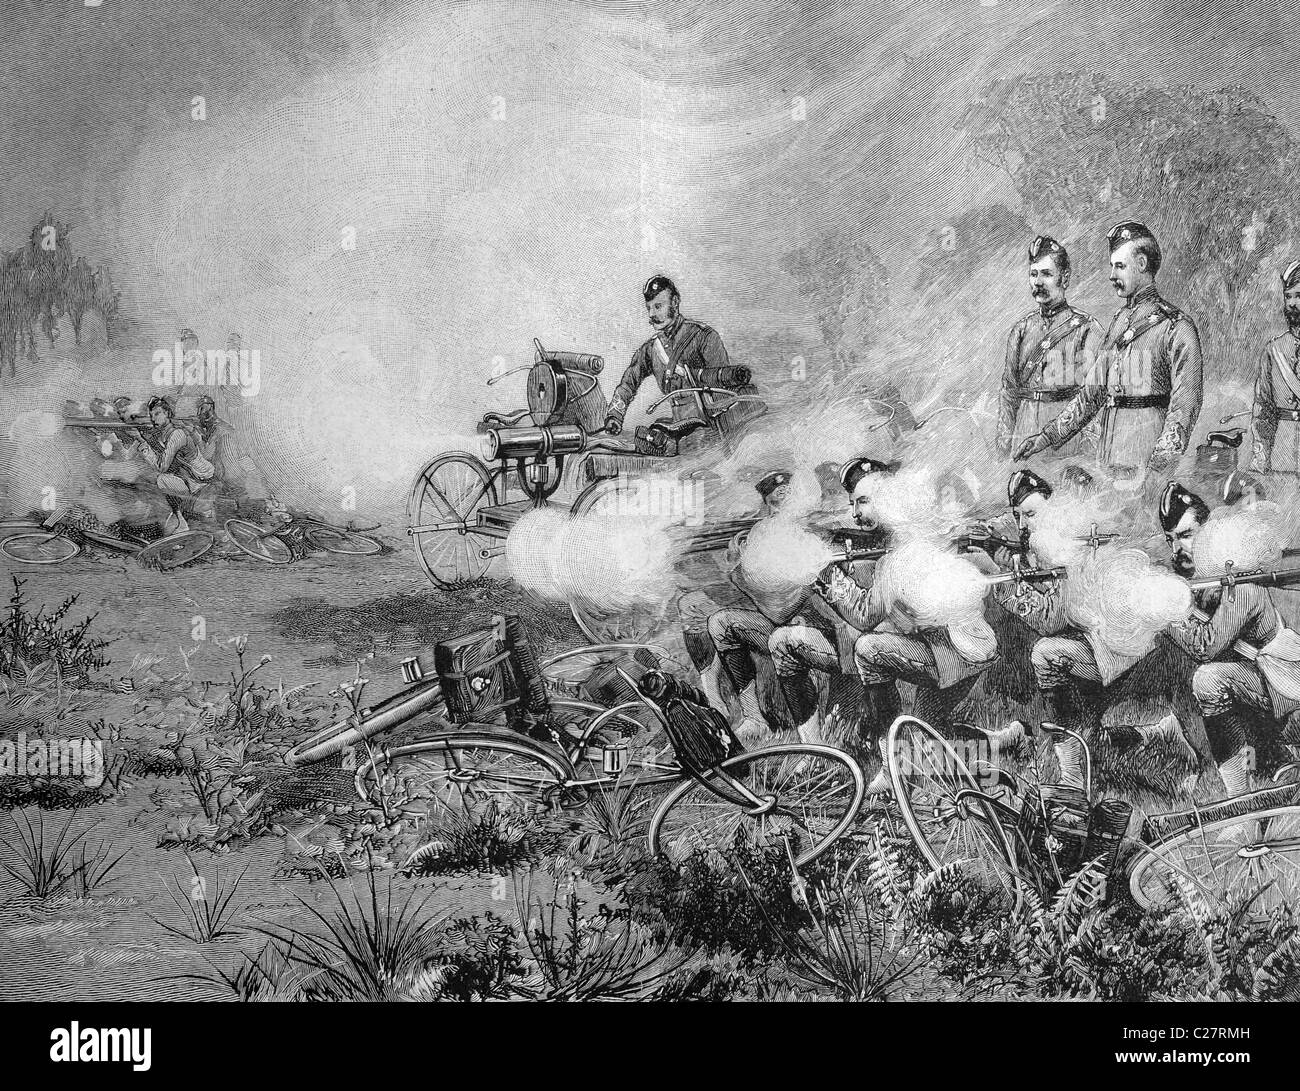 British soldiers with bicycles and rapid-fire guns, historical illustration, ca. 1893 - Stock Image